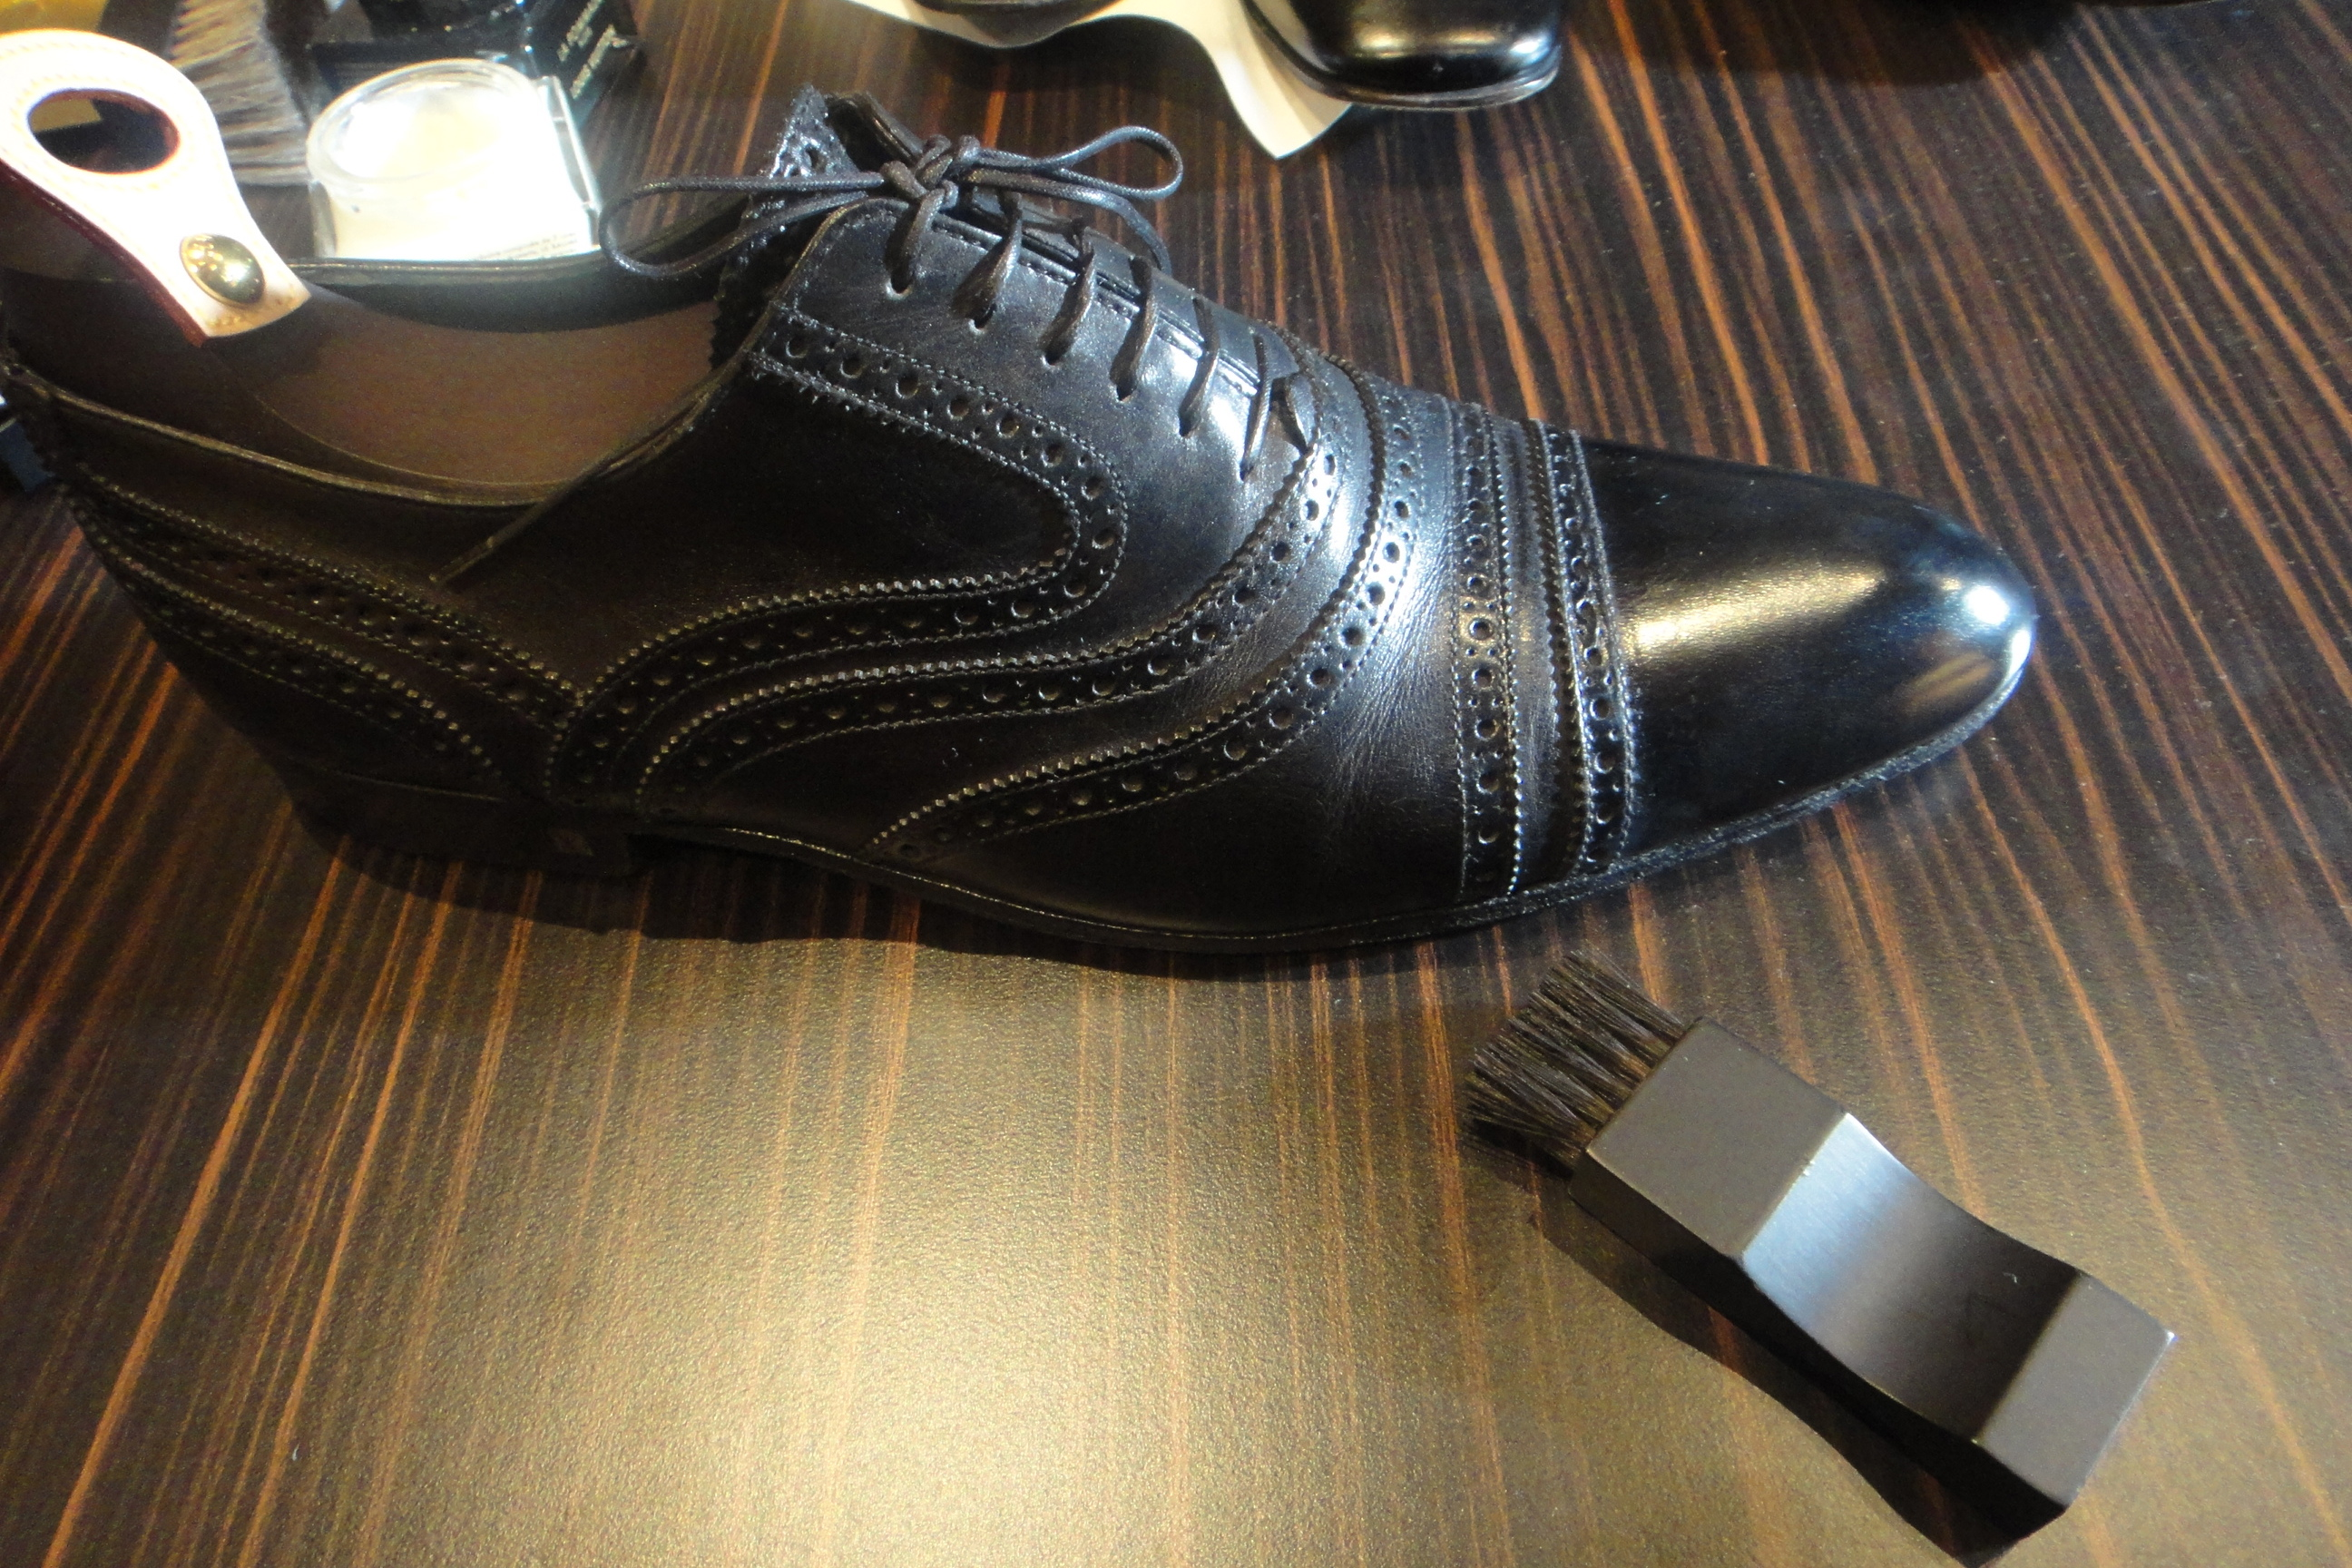 shoe polishing - Louis Vuitton - Schuhe putzen